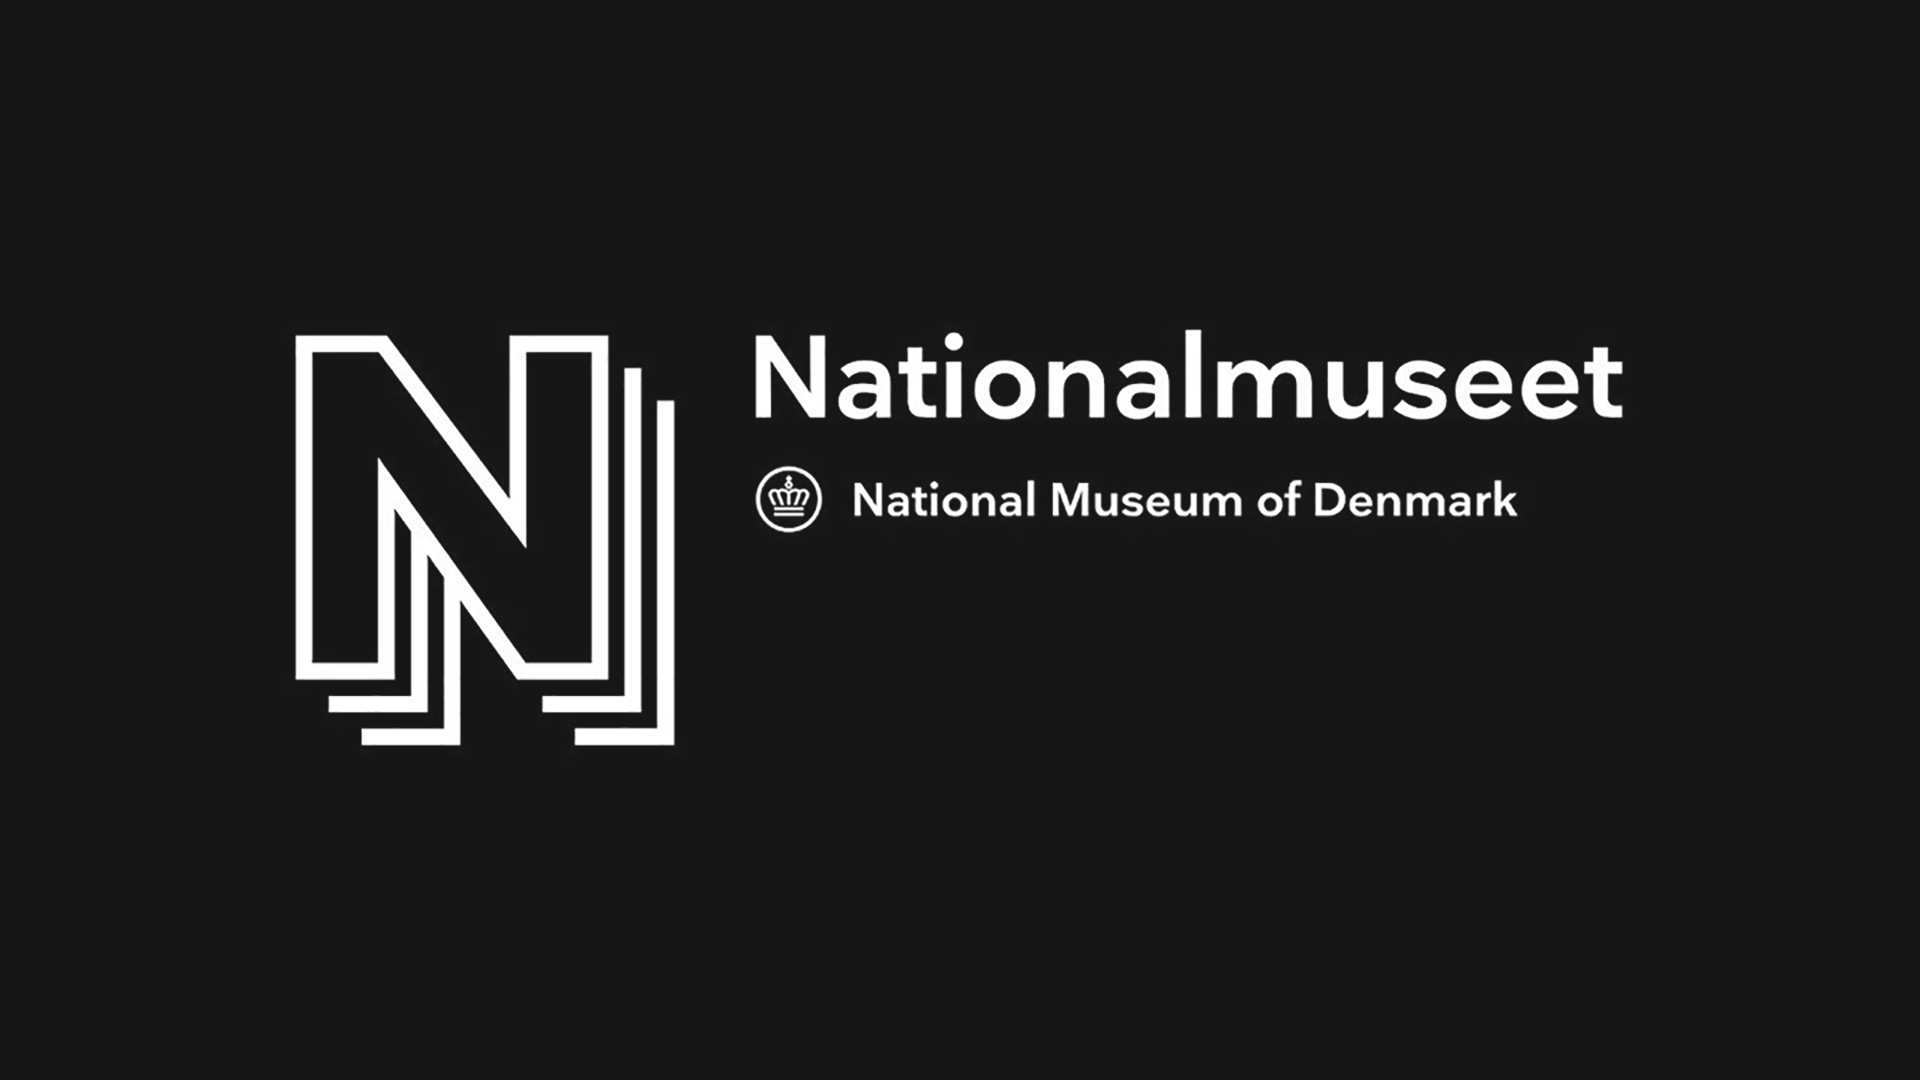 The National Museum of Denmark   The National Museum of Denmark in Copenhagen is Denmark's largest museum of cultural history.